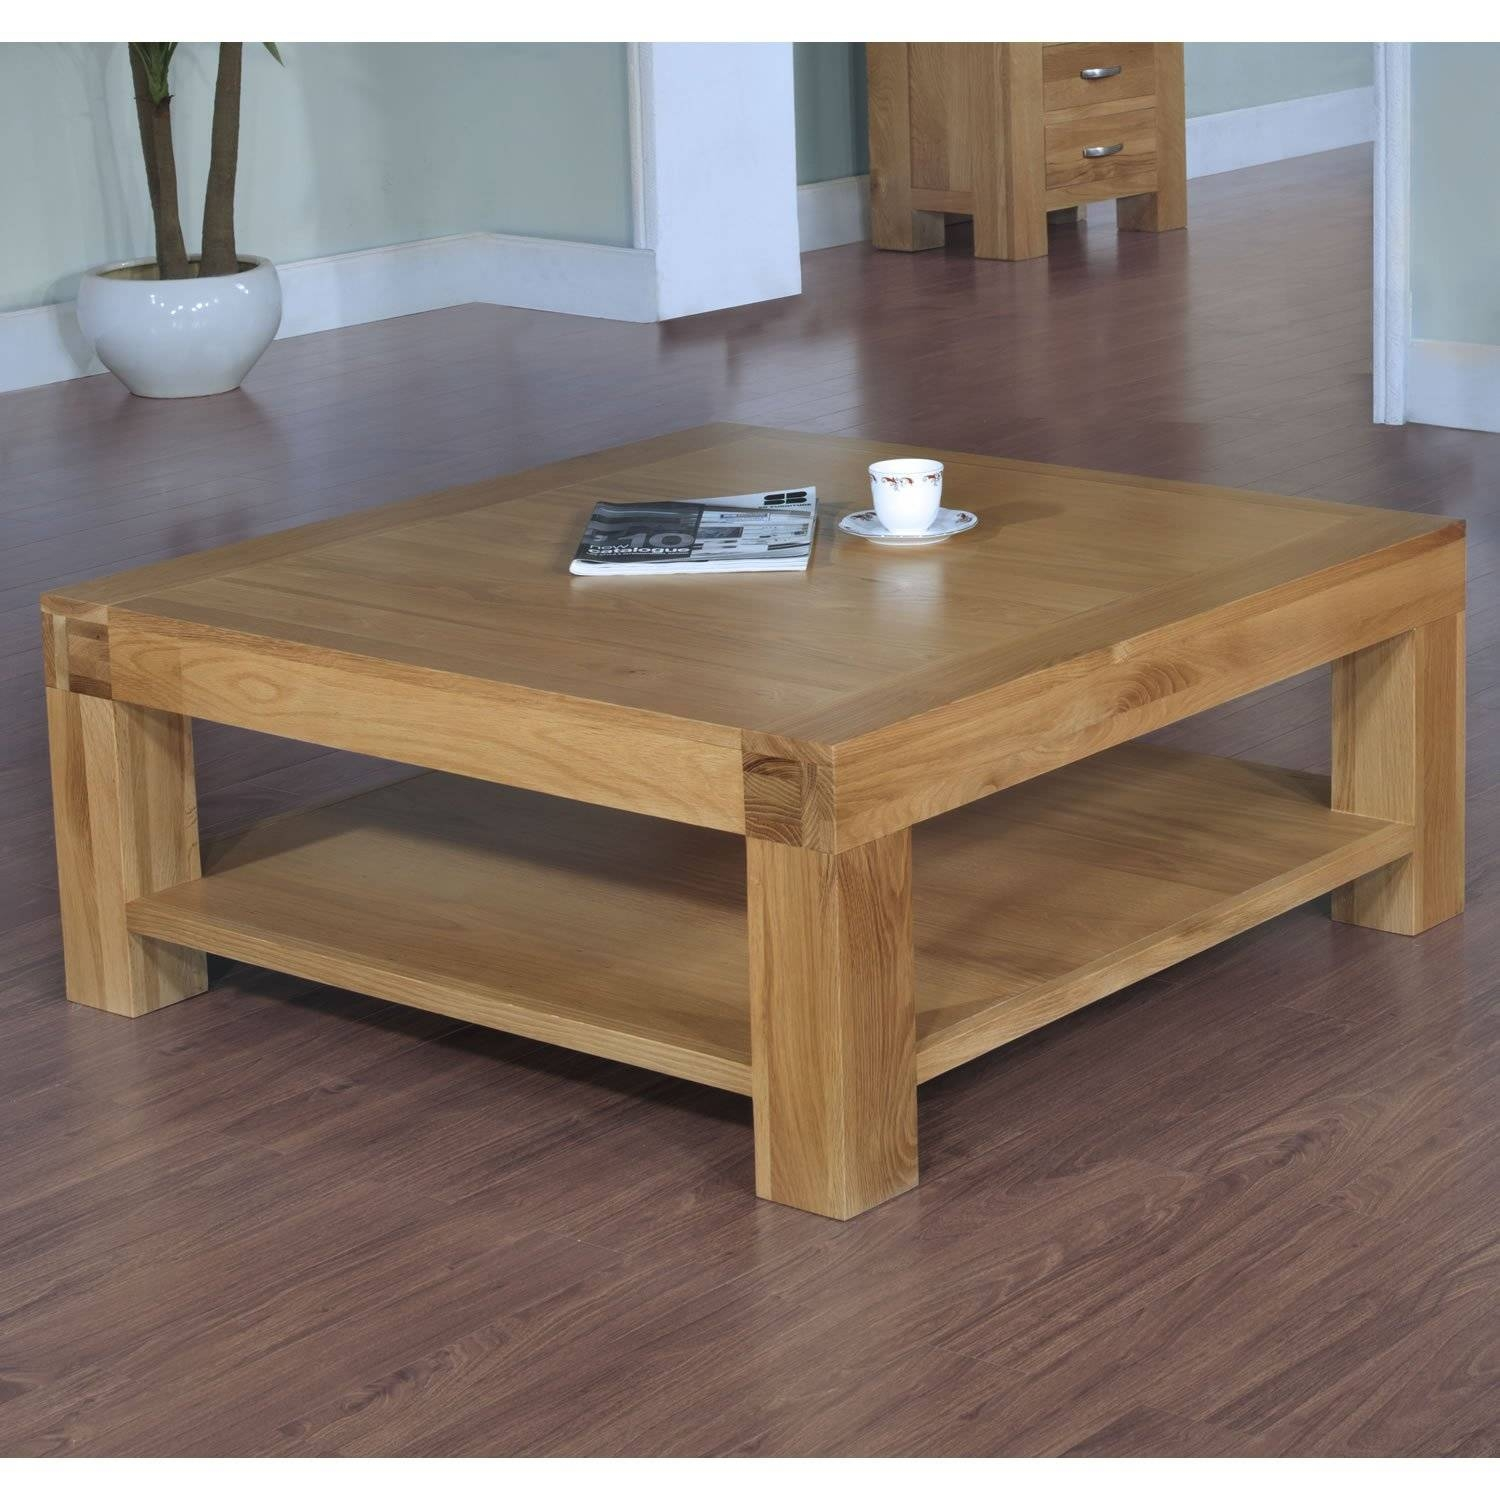 Orly Oak Square Coffee Table With Drawers | Coffee Tables Decoration throughout Oversized Square Coffee Tables (Image 22 of 30)